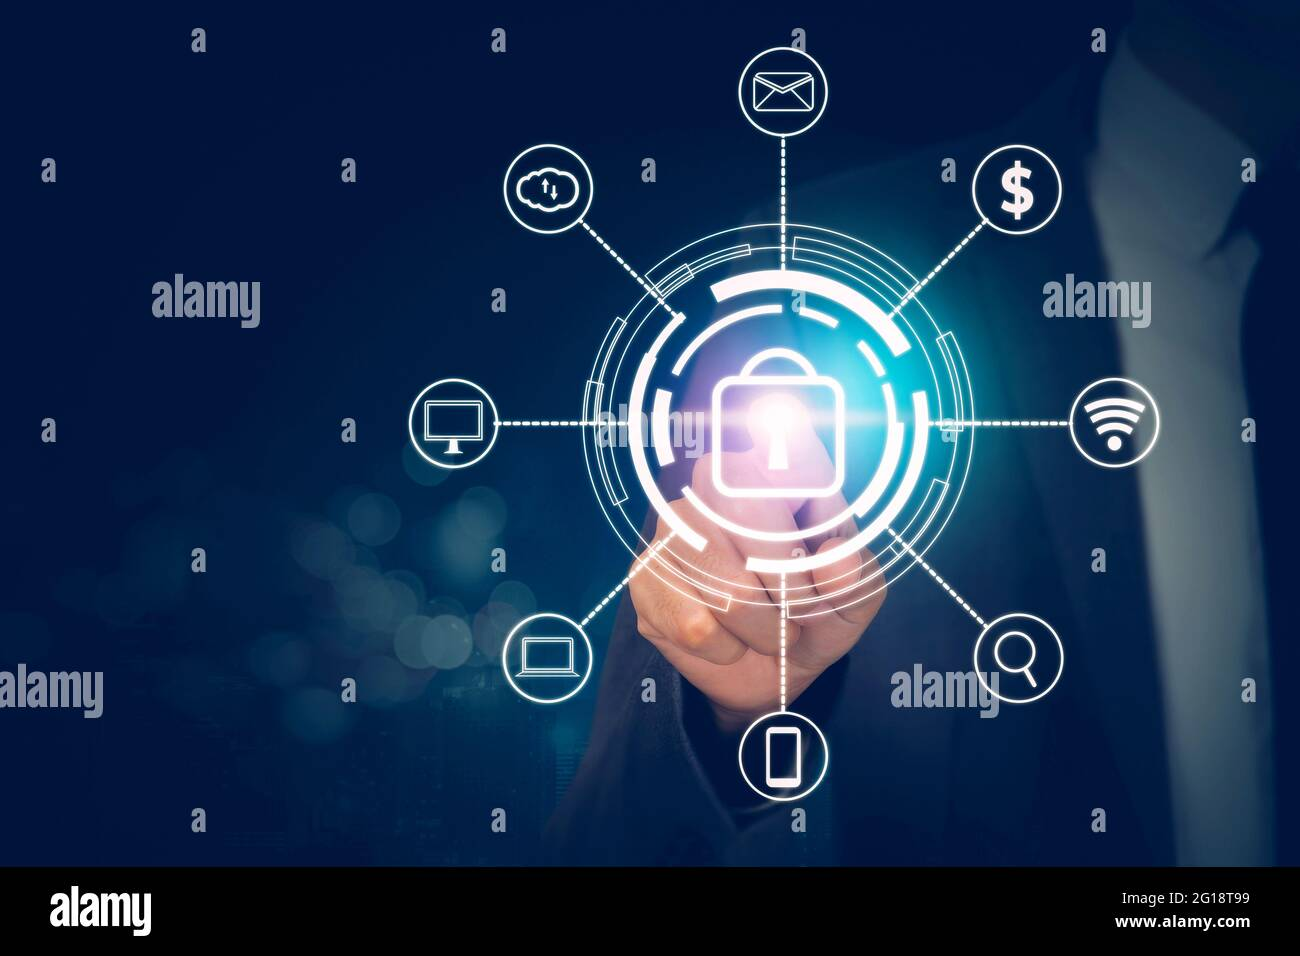 Hand of businessman pushing icon lock sign while cyber security with access with finger, data and privacy with protection digital virtual, innovation Stock Photo